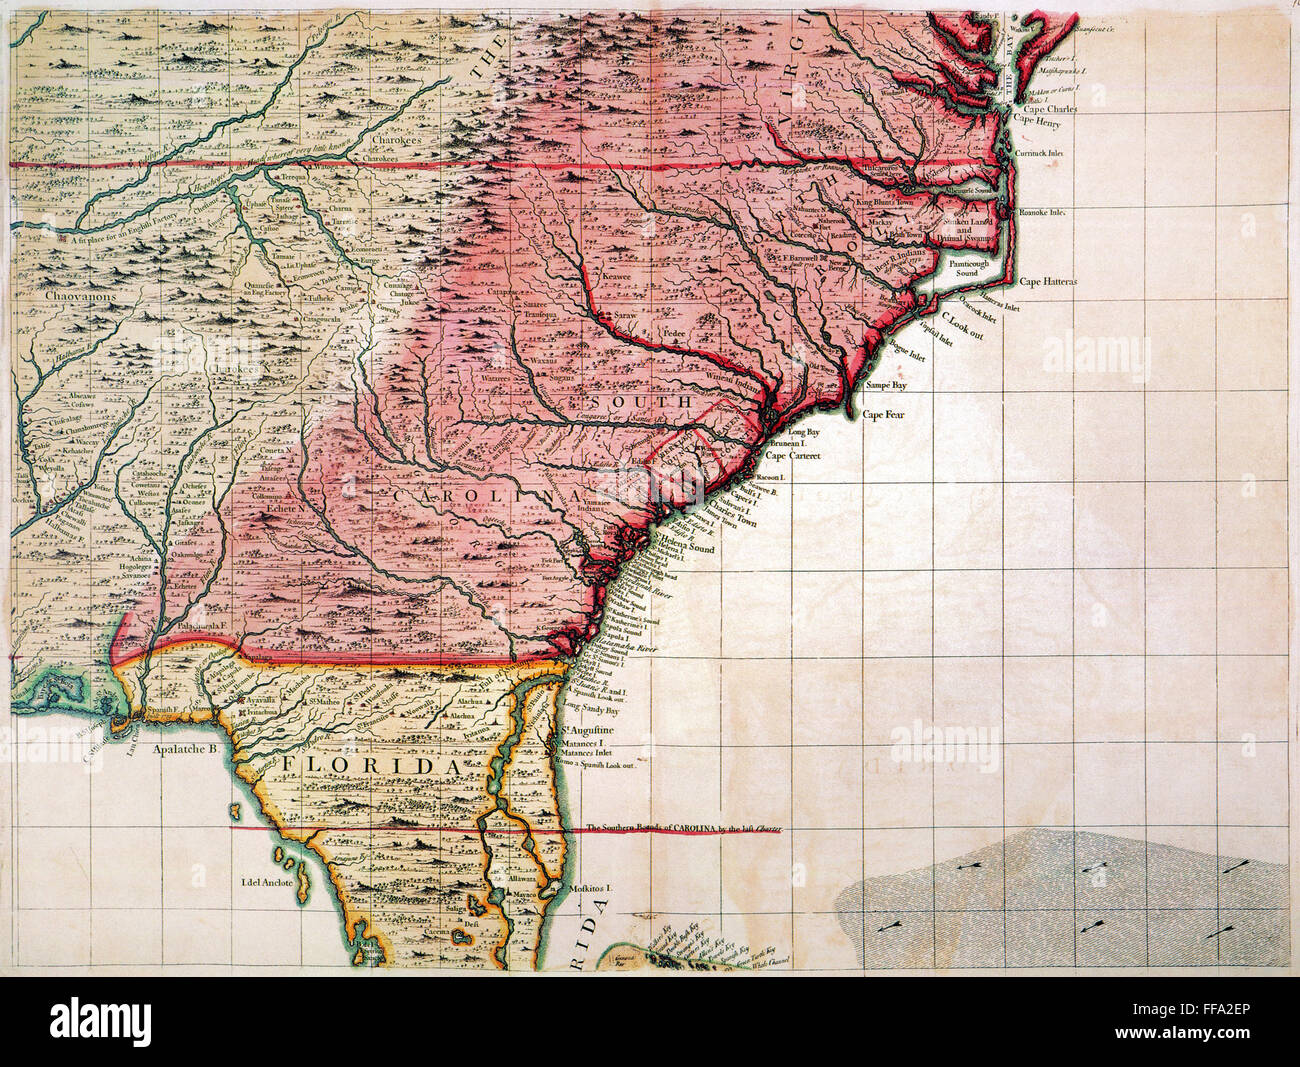 Colonial American Map.Colonial America Map 1733 Nenglish Map Of The American South East